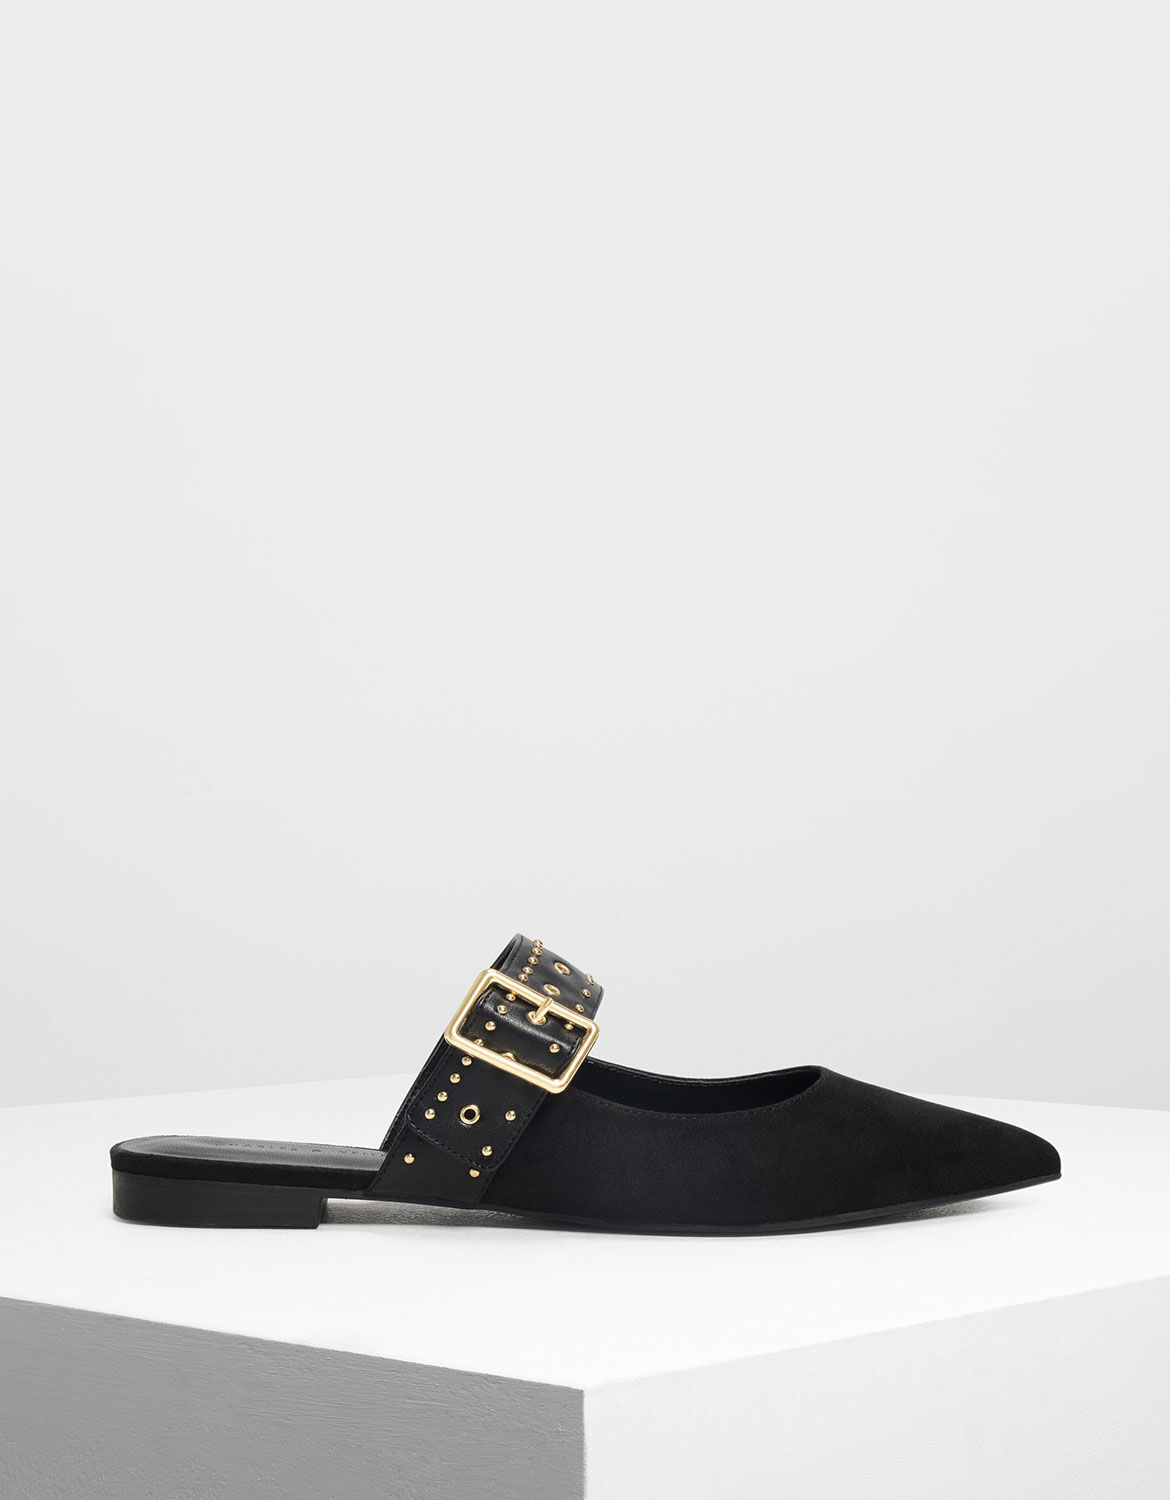 Studded Buckle Mules   CHARLES \u0026 KEITH TW